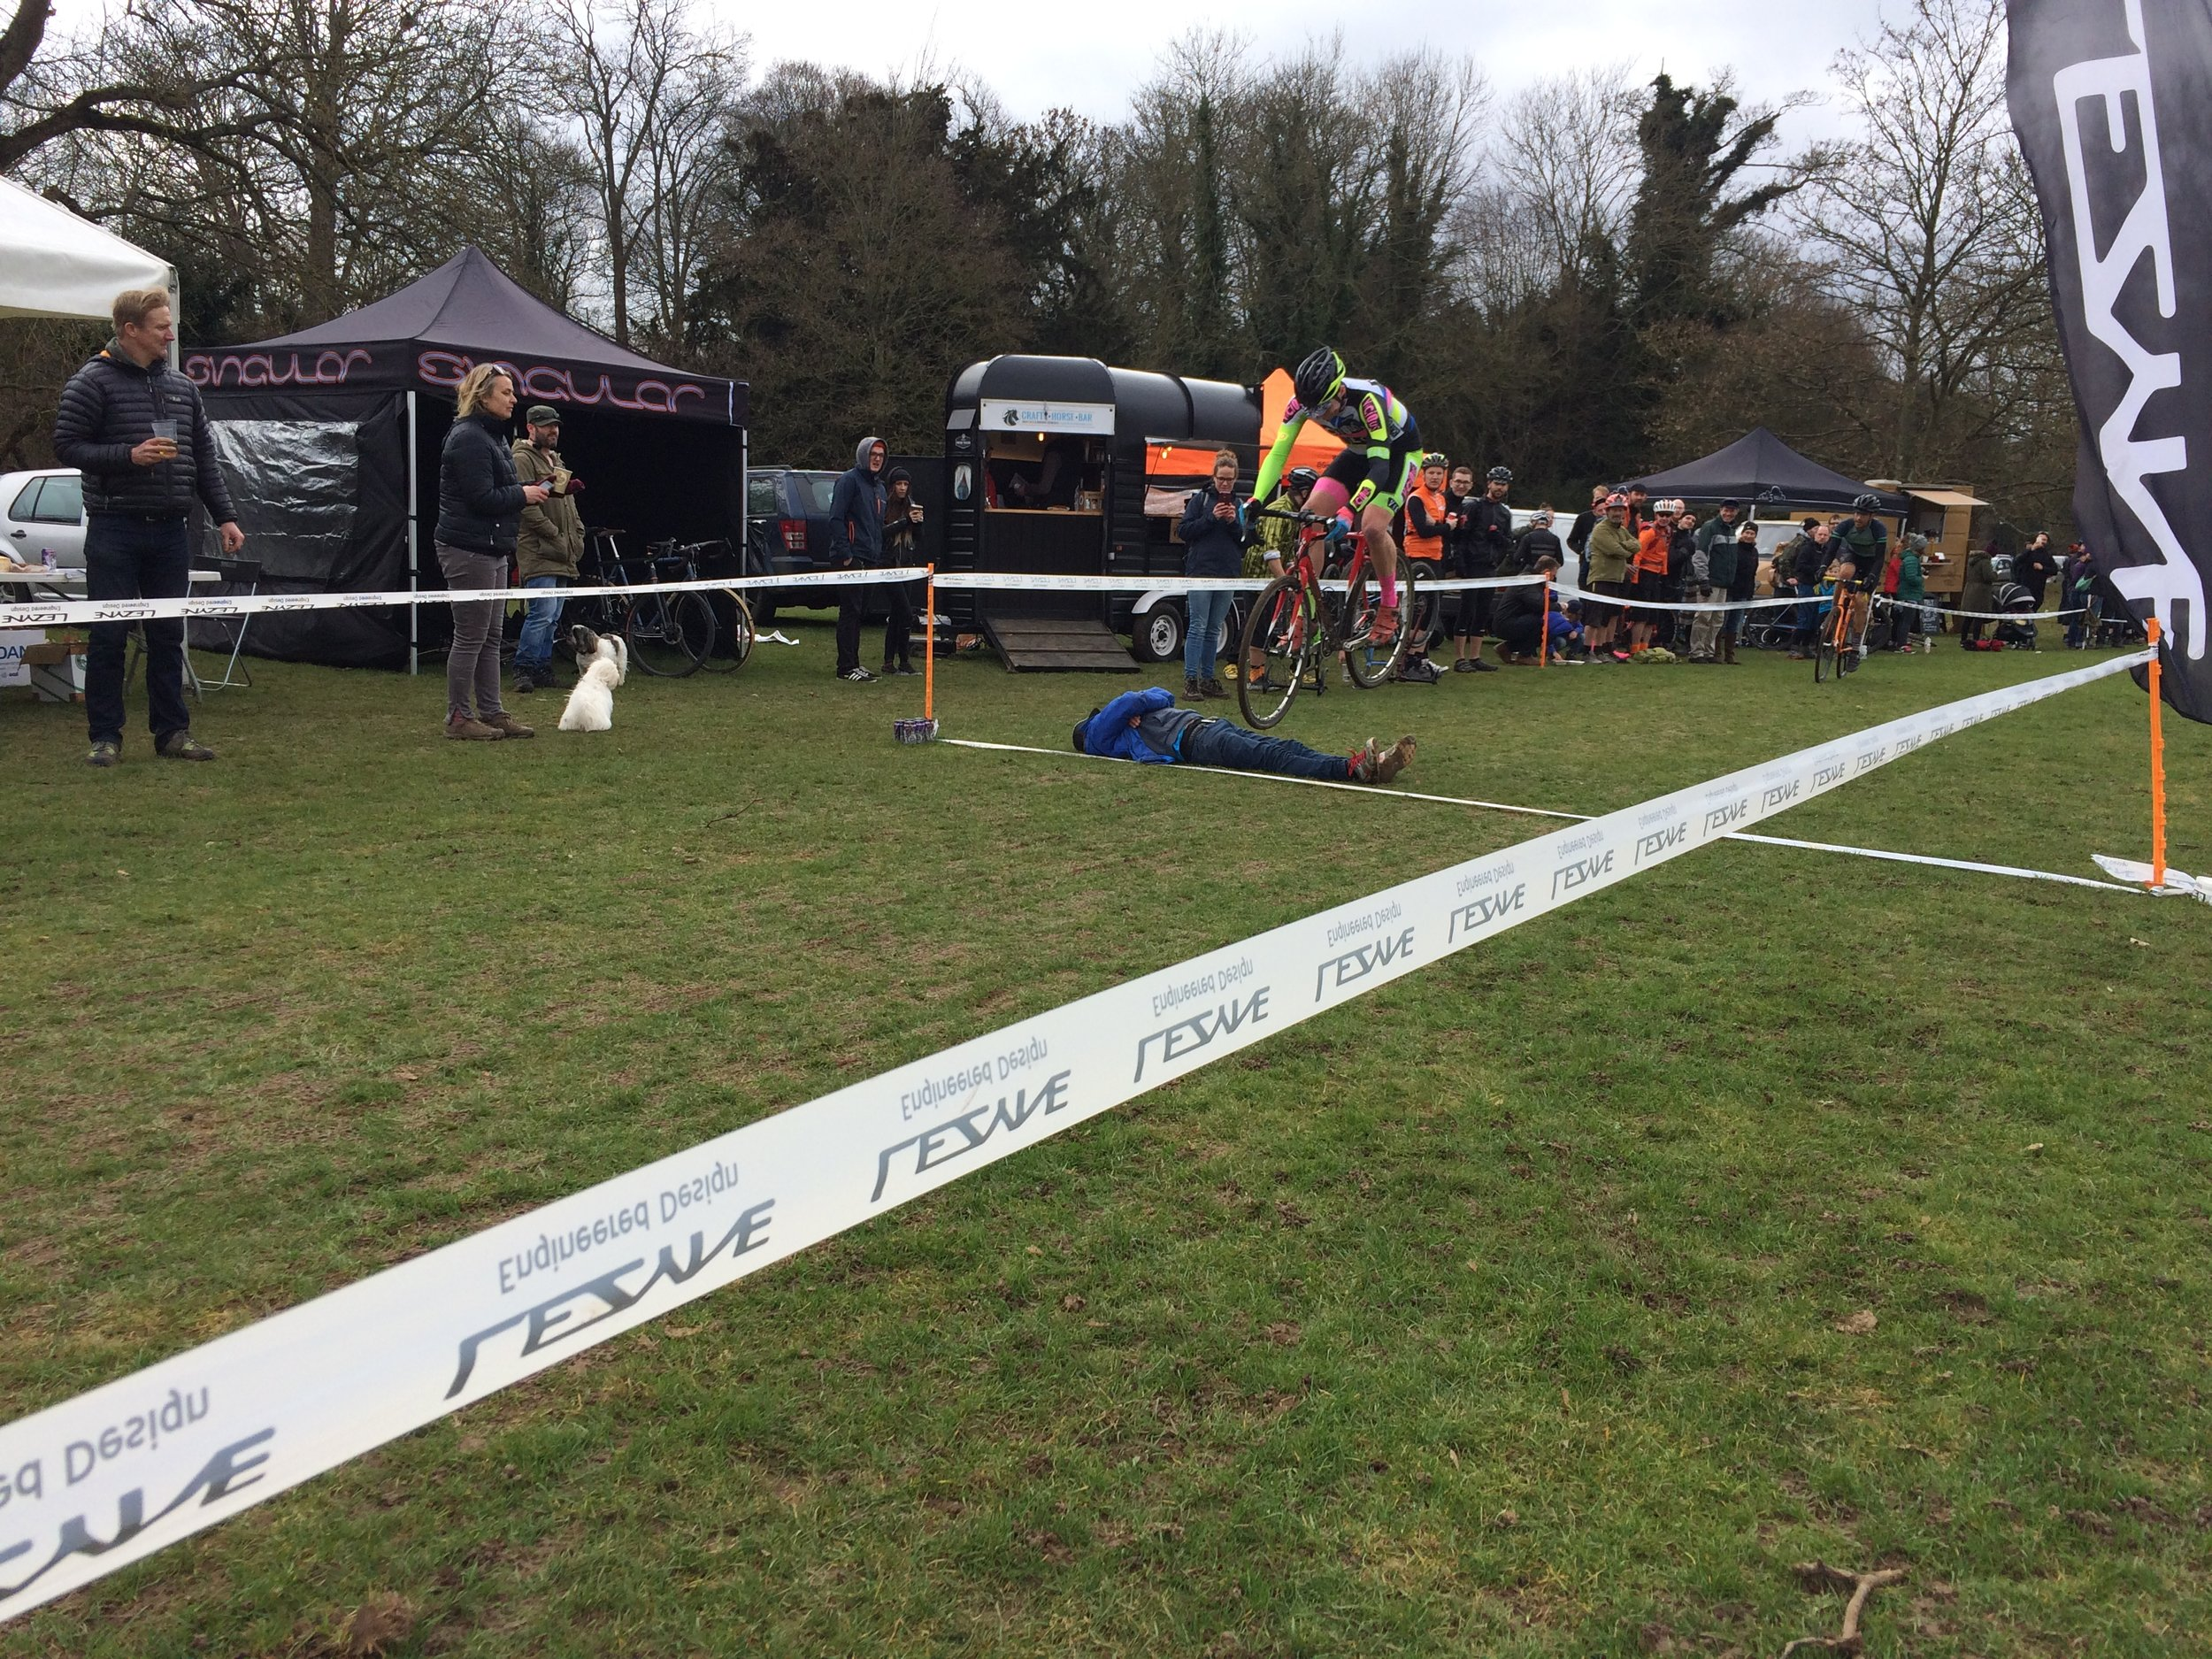 Not your usual cyclocross barrier...